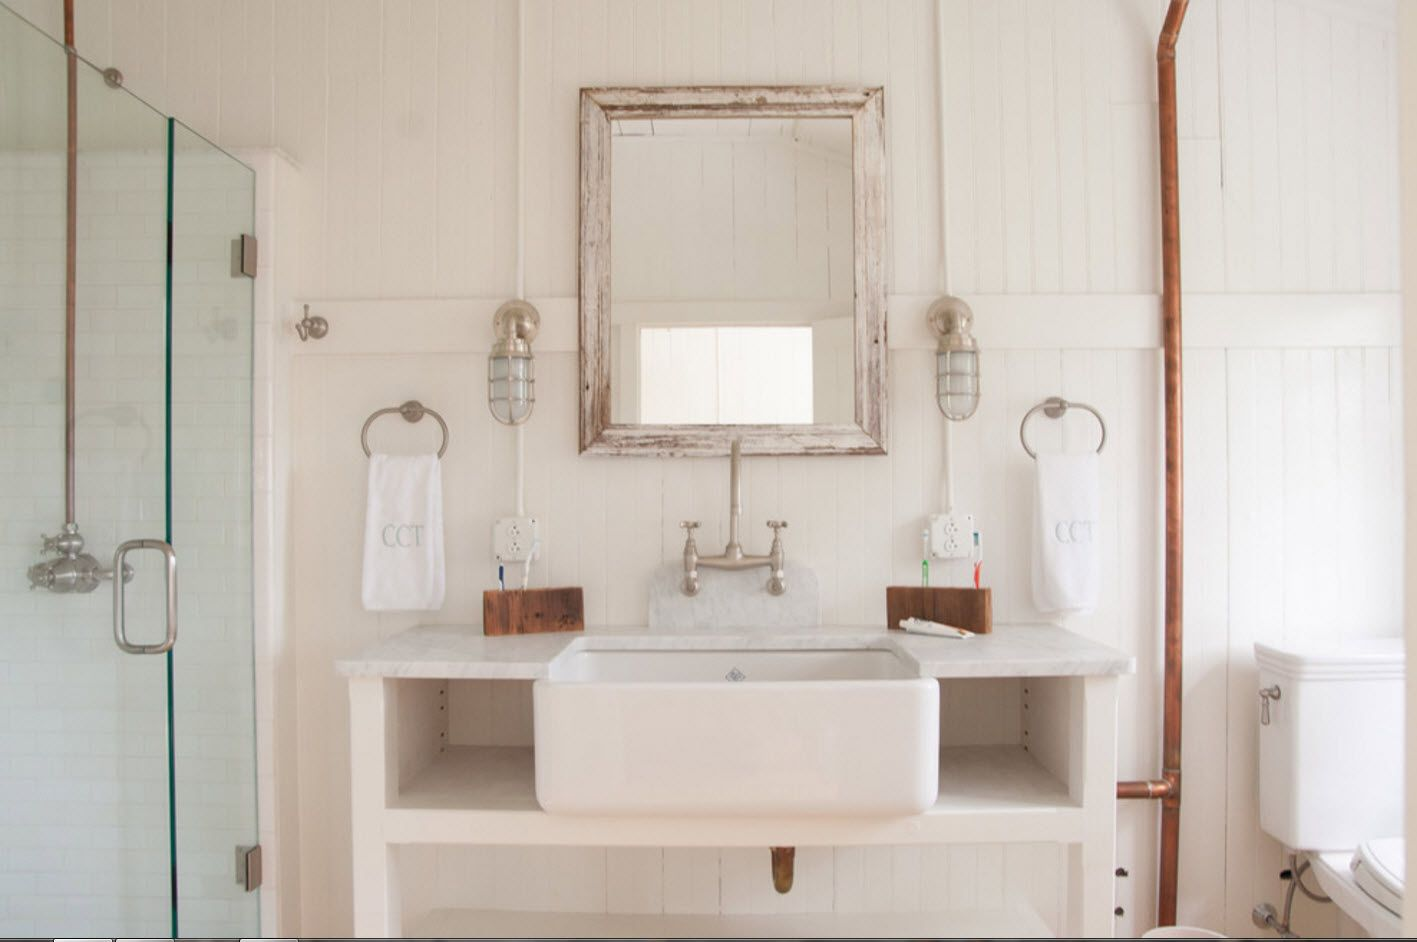 Classic rustic interior of the strict designed bathroom